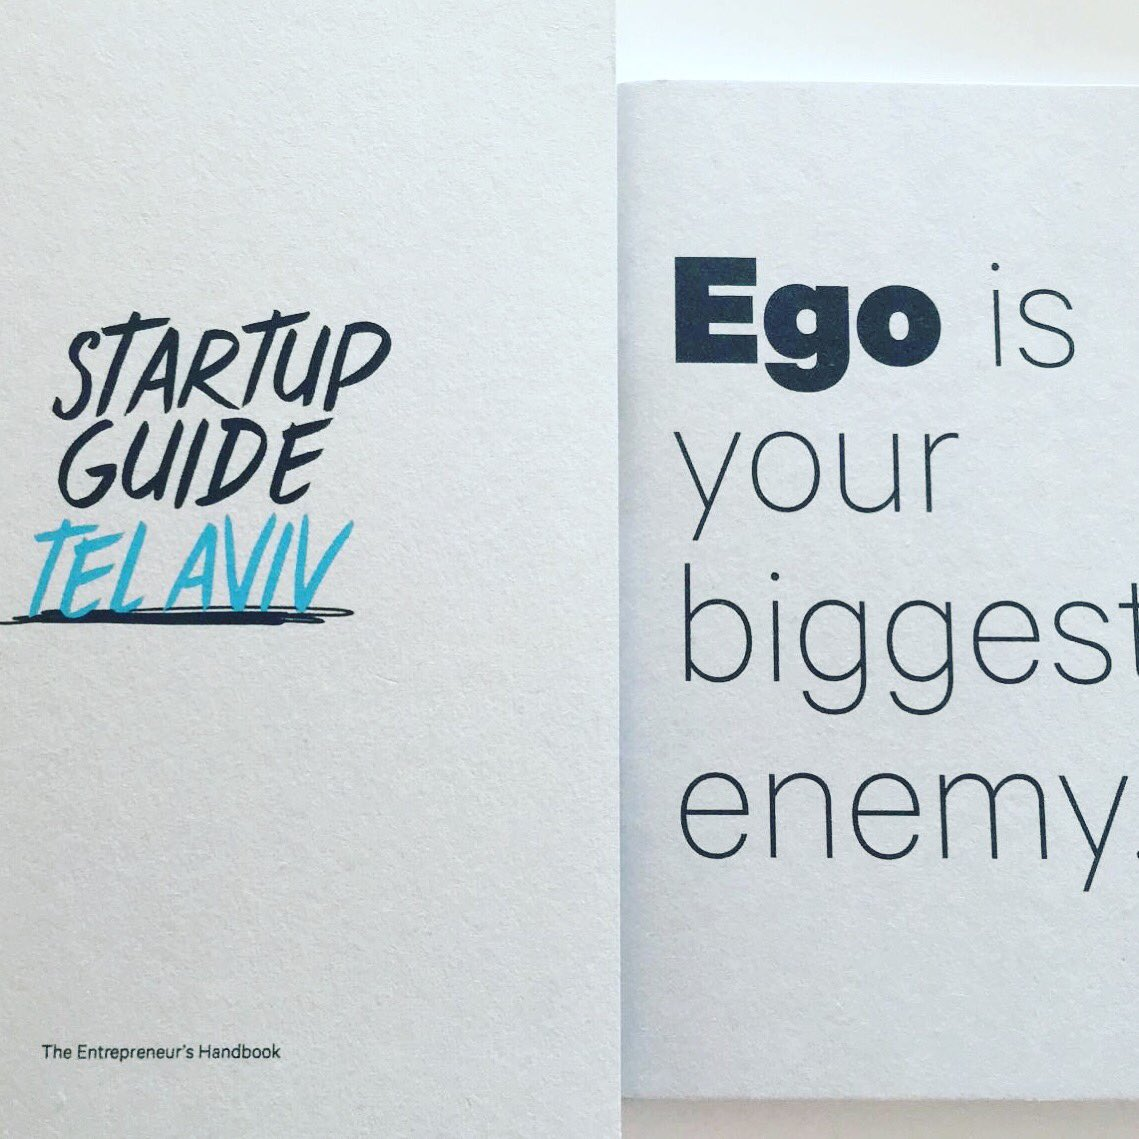 I already have the startup guide Tel Aviv from my friend Erez Gavish Excellent! See you Soon! #startupguide #telaviv #spain https://t.co/WQmU9A8rGO